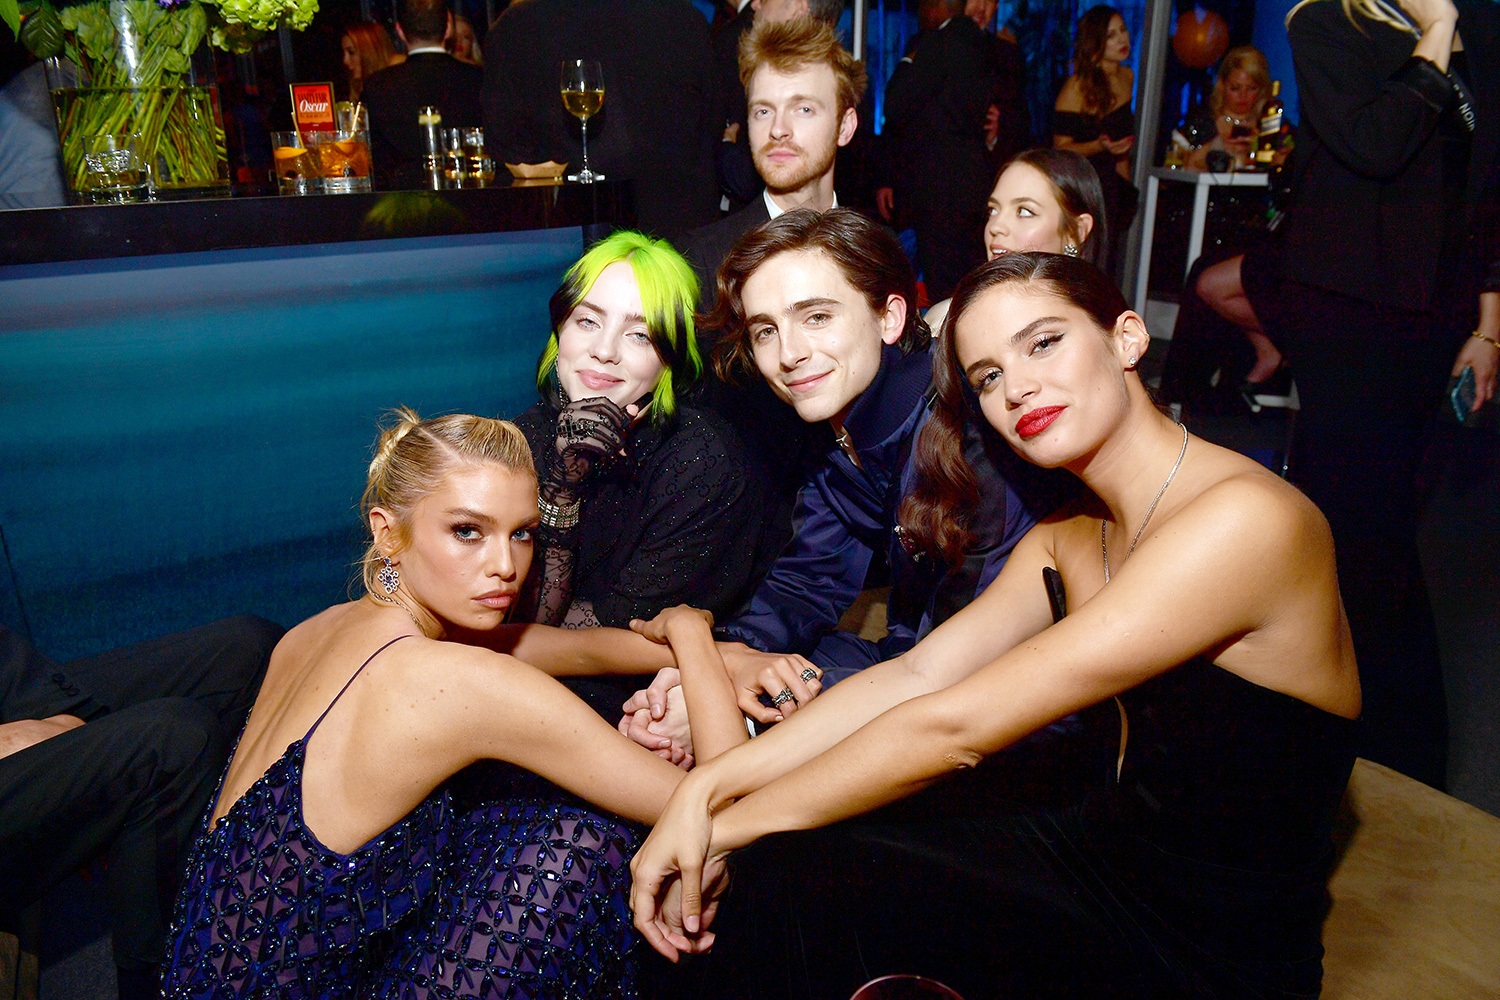 Stella Maxwell, Billie Eilish, Finneas O'Connell, Timothée Chalamet, and Sara Sampaio attend the 2020 Vanity Fair Oscar Party hosted by Radhika Jones at Wallis Annenberg Center for the Performing Arts on February 09, 2020 in Beverly Hills, California